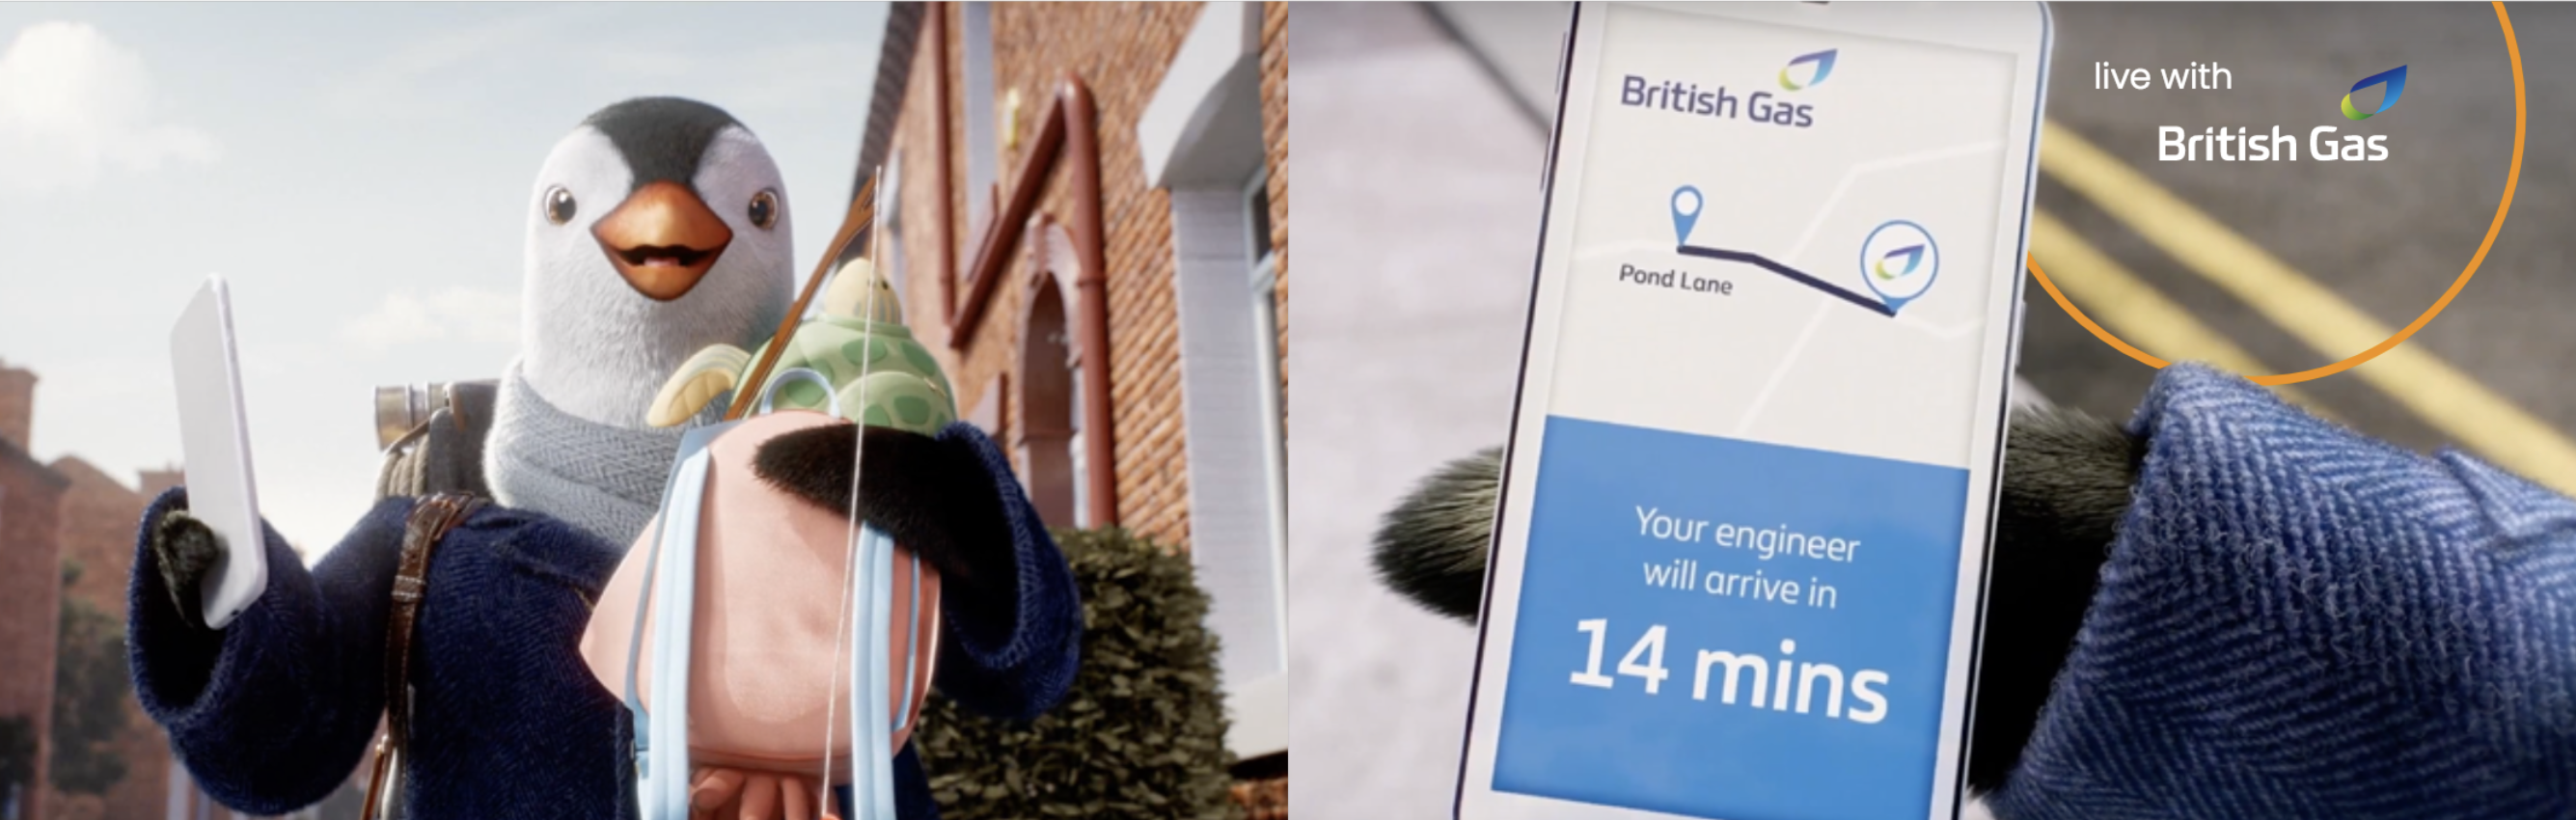 Wilbur - live with British gas